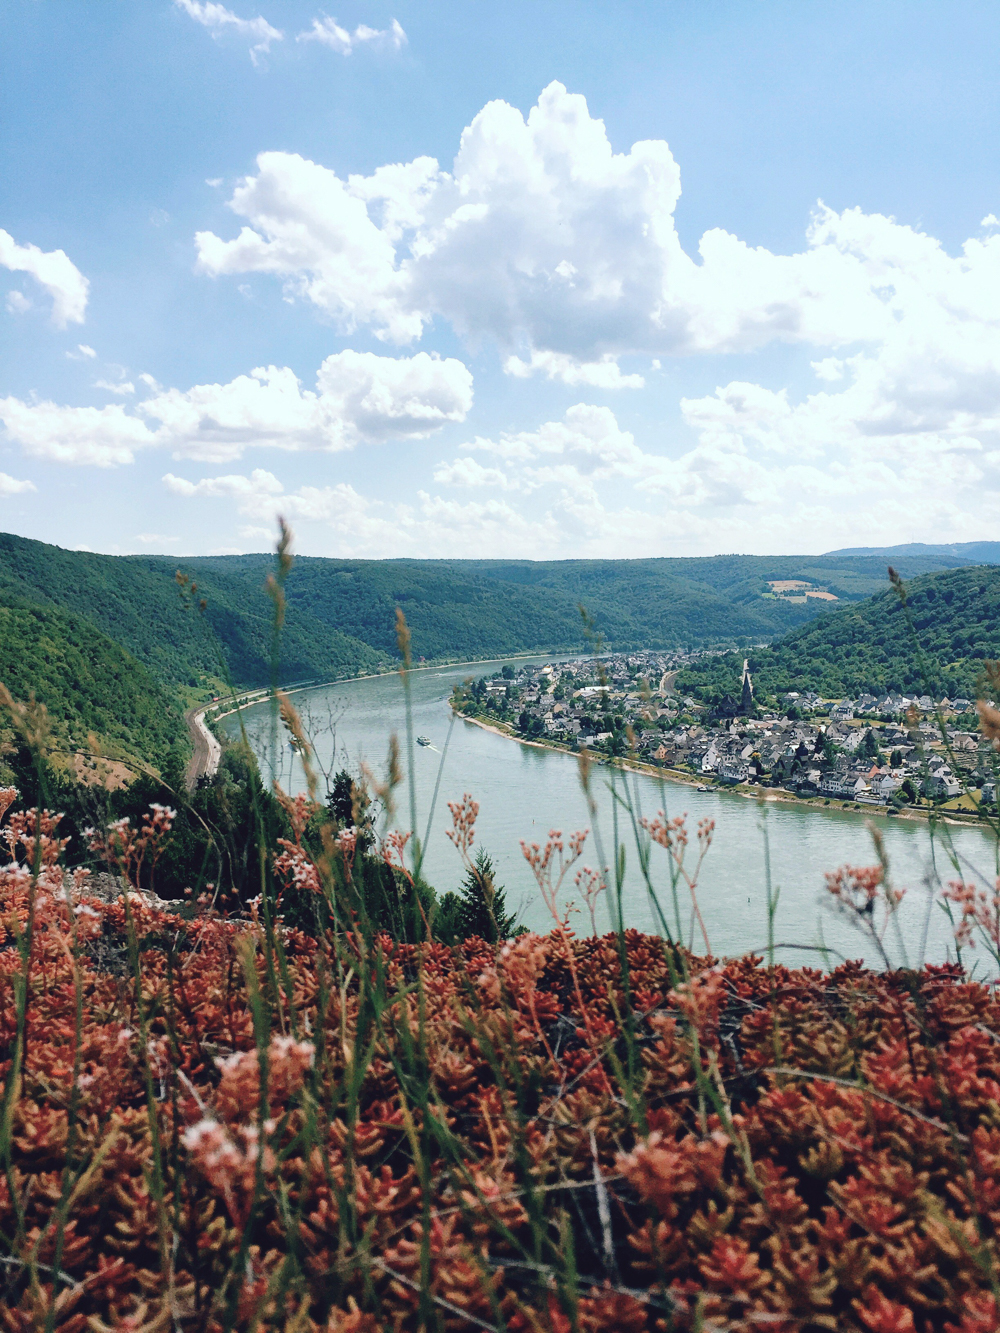 Rheinland-Pfalz and the romantic Rhine River, Germany